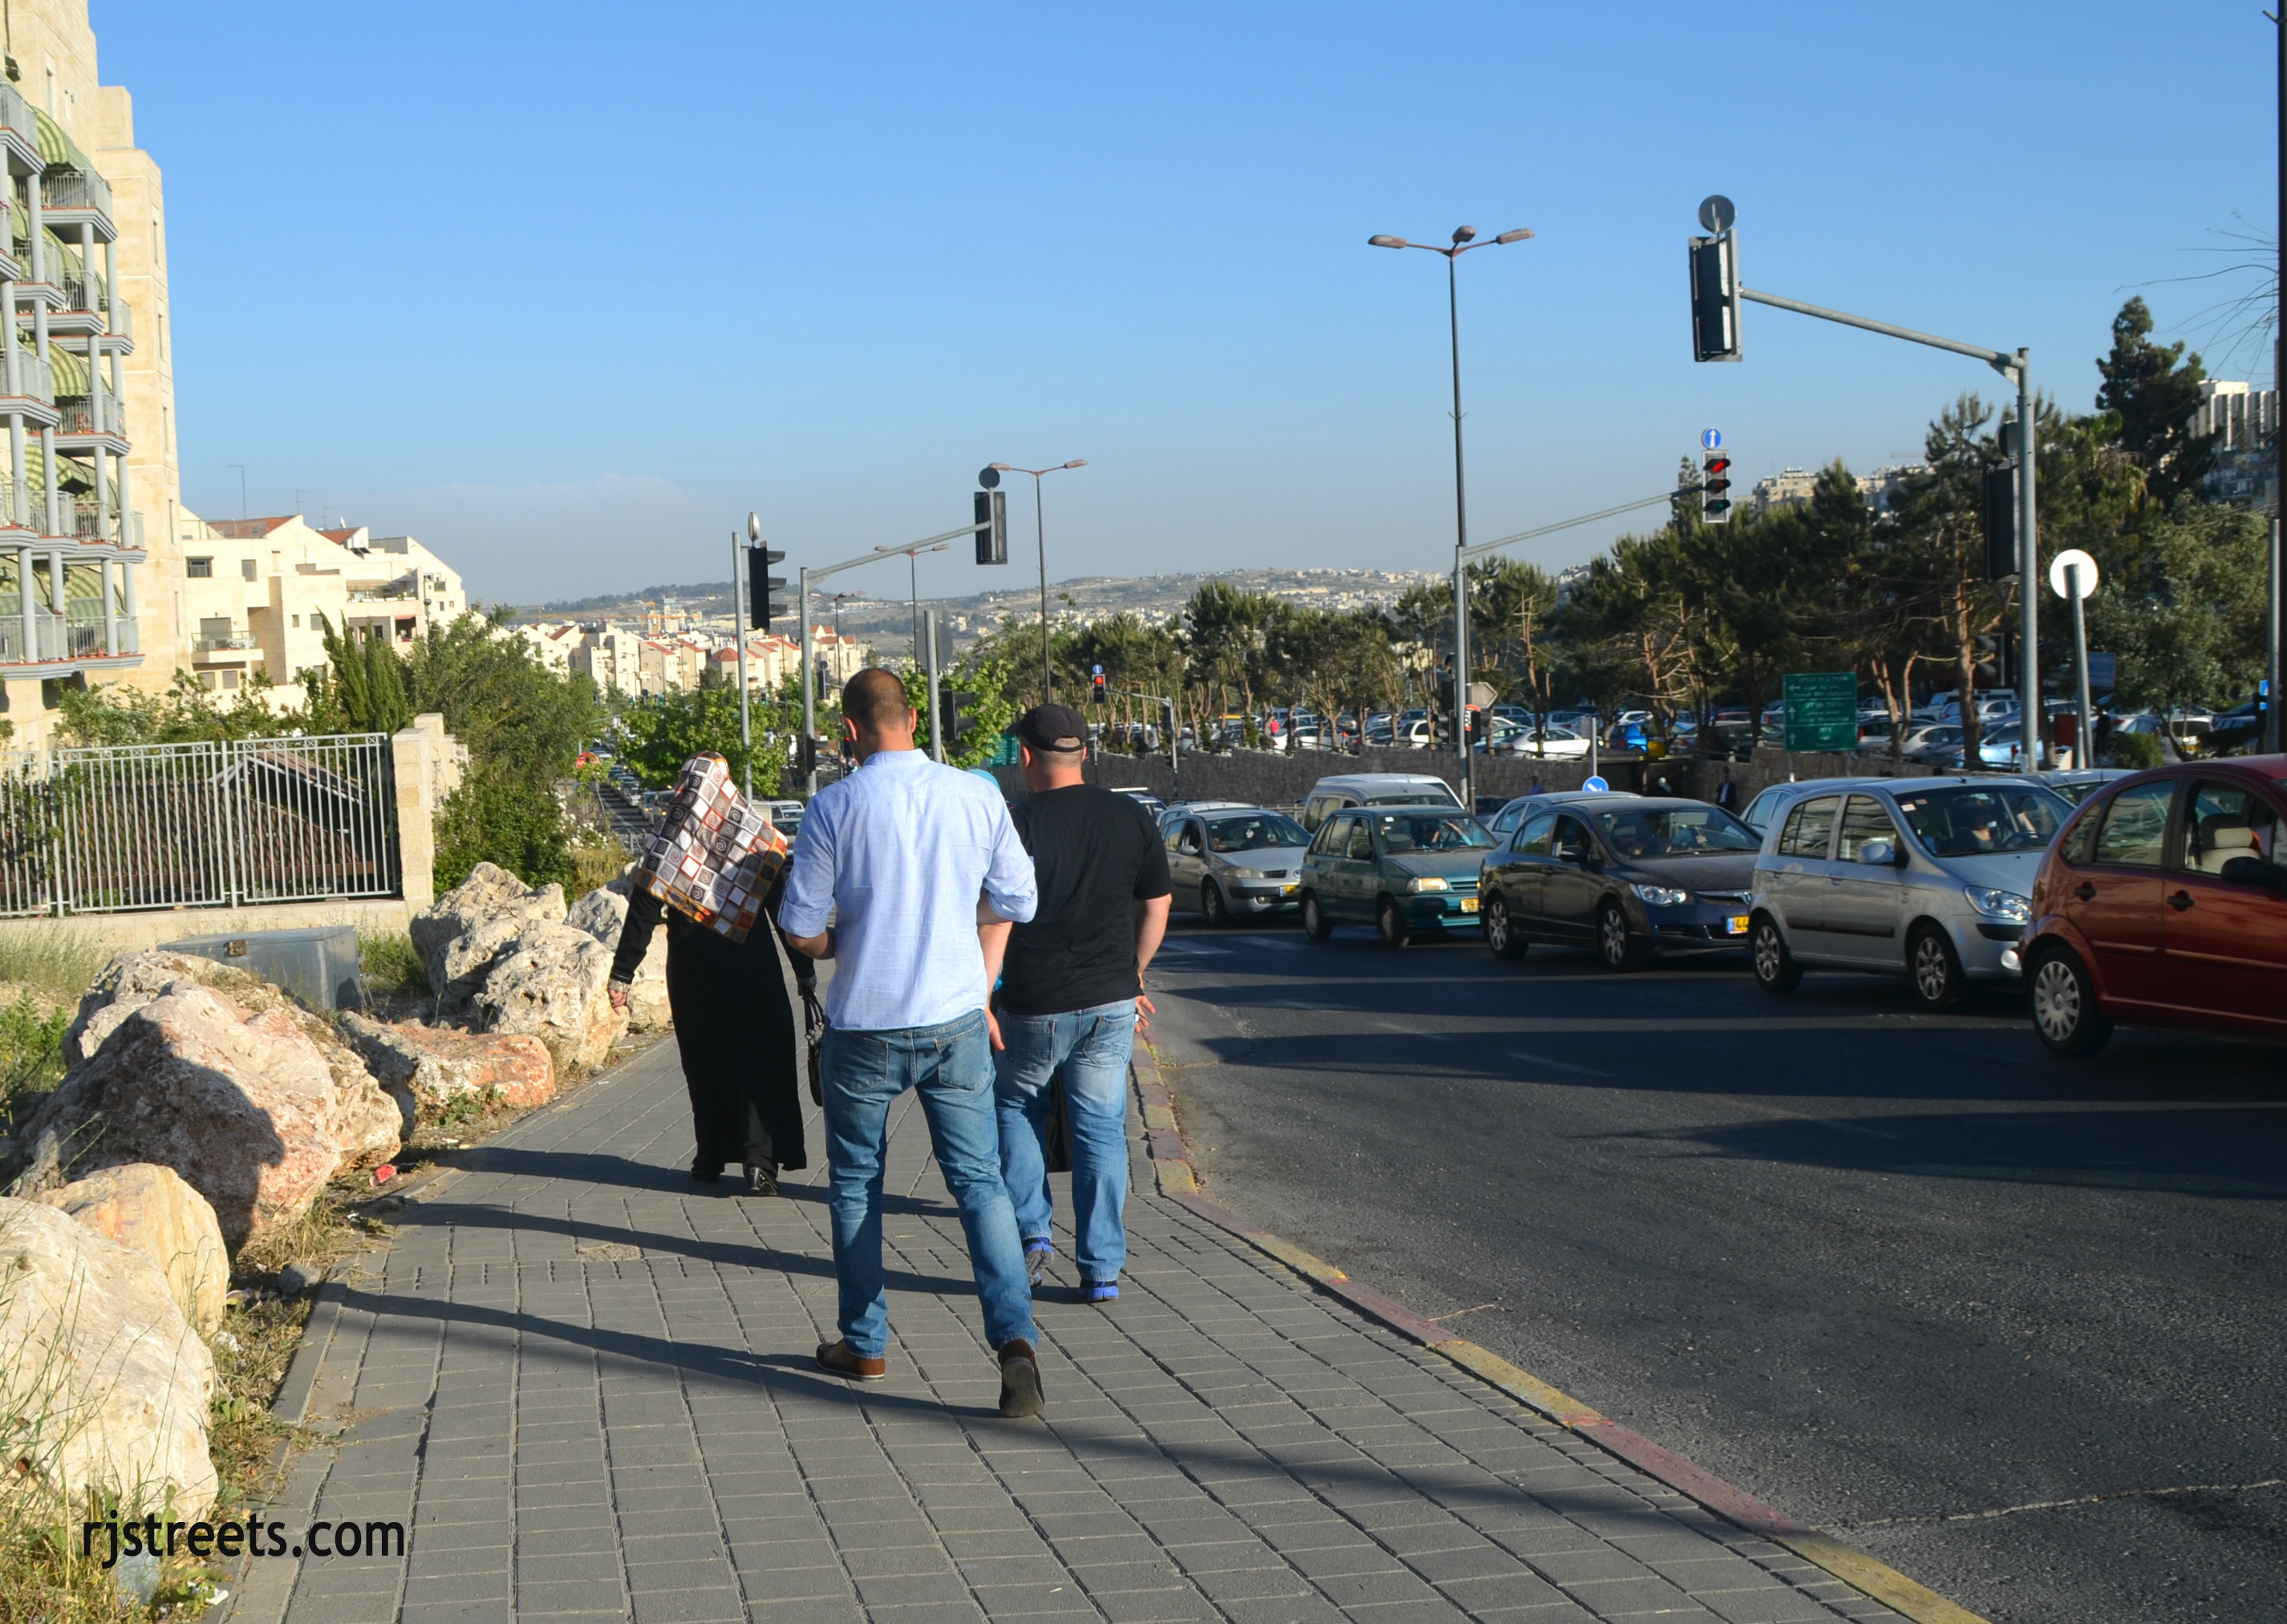 image Israel apartheid, photo Arabs Jerusalem, Palestinians picture